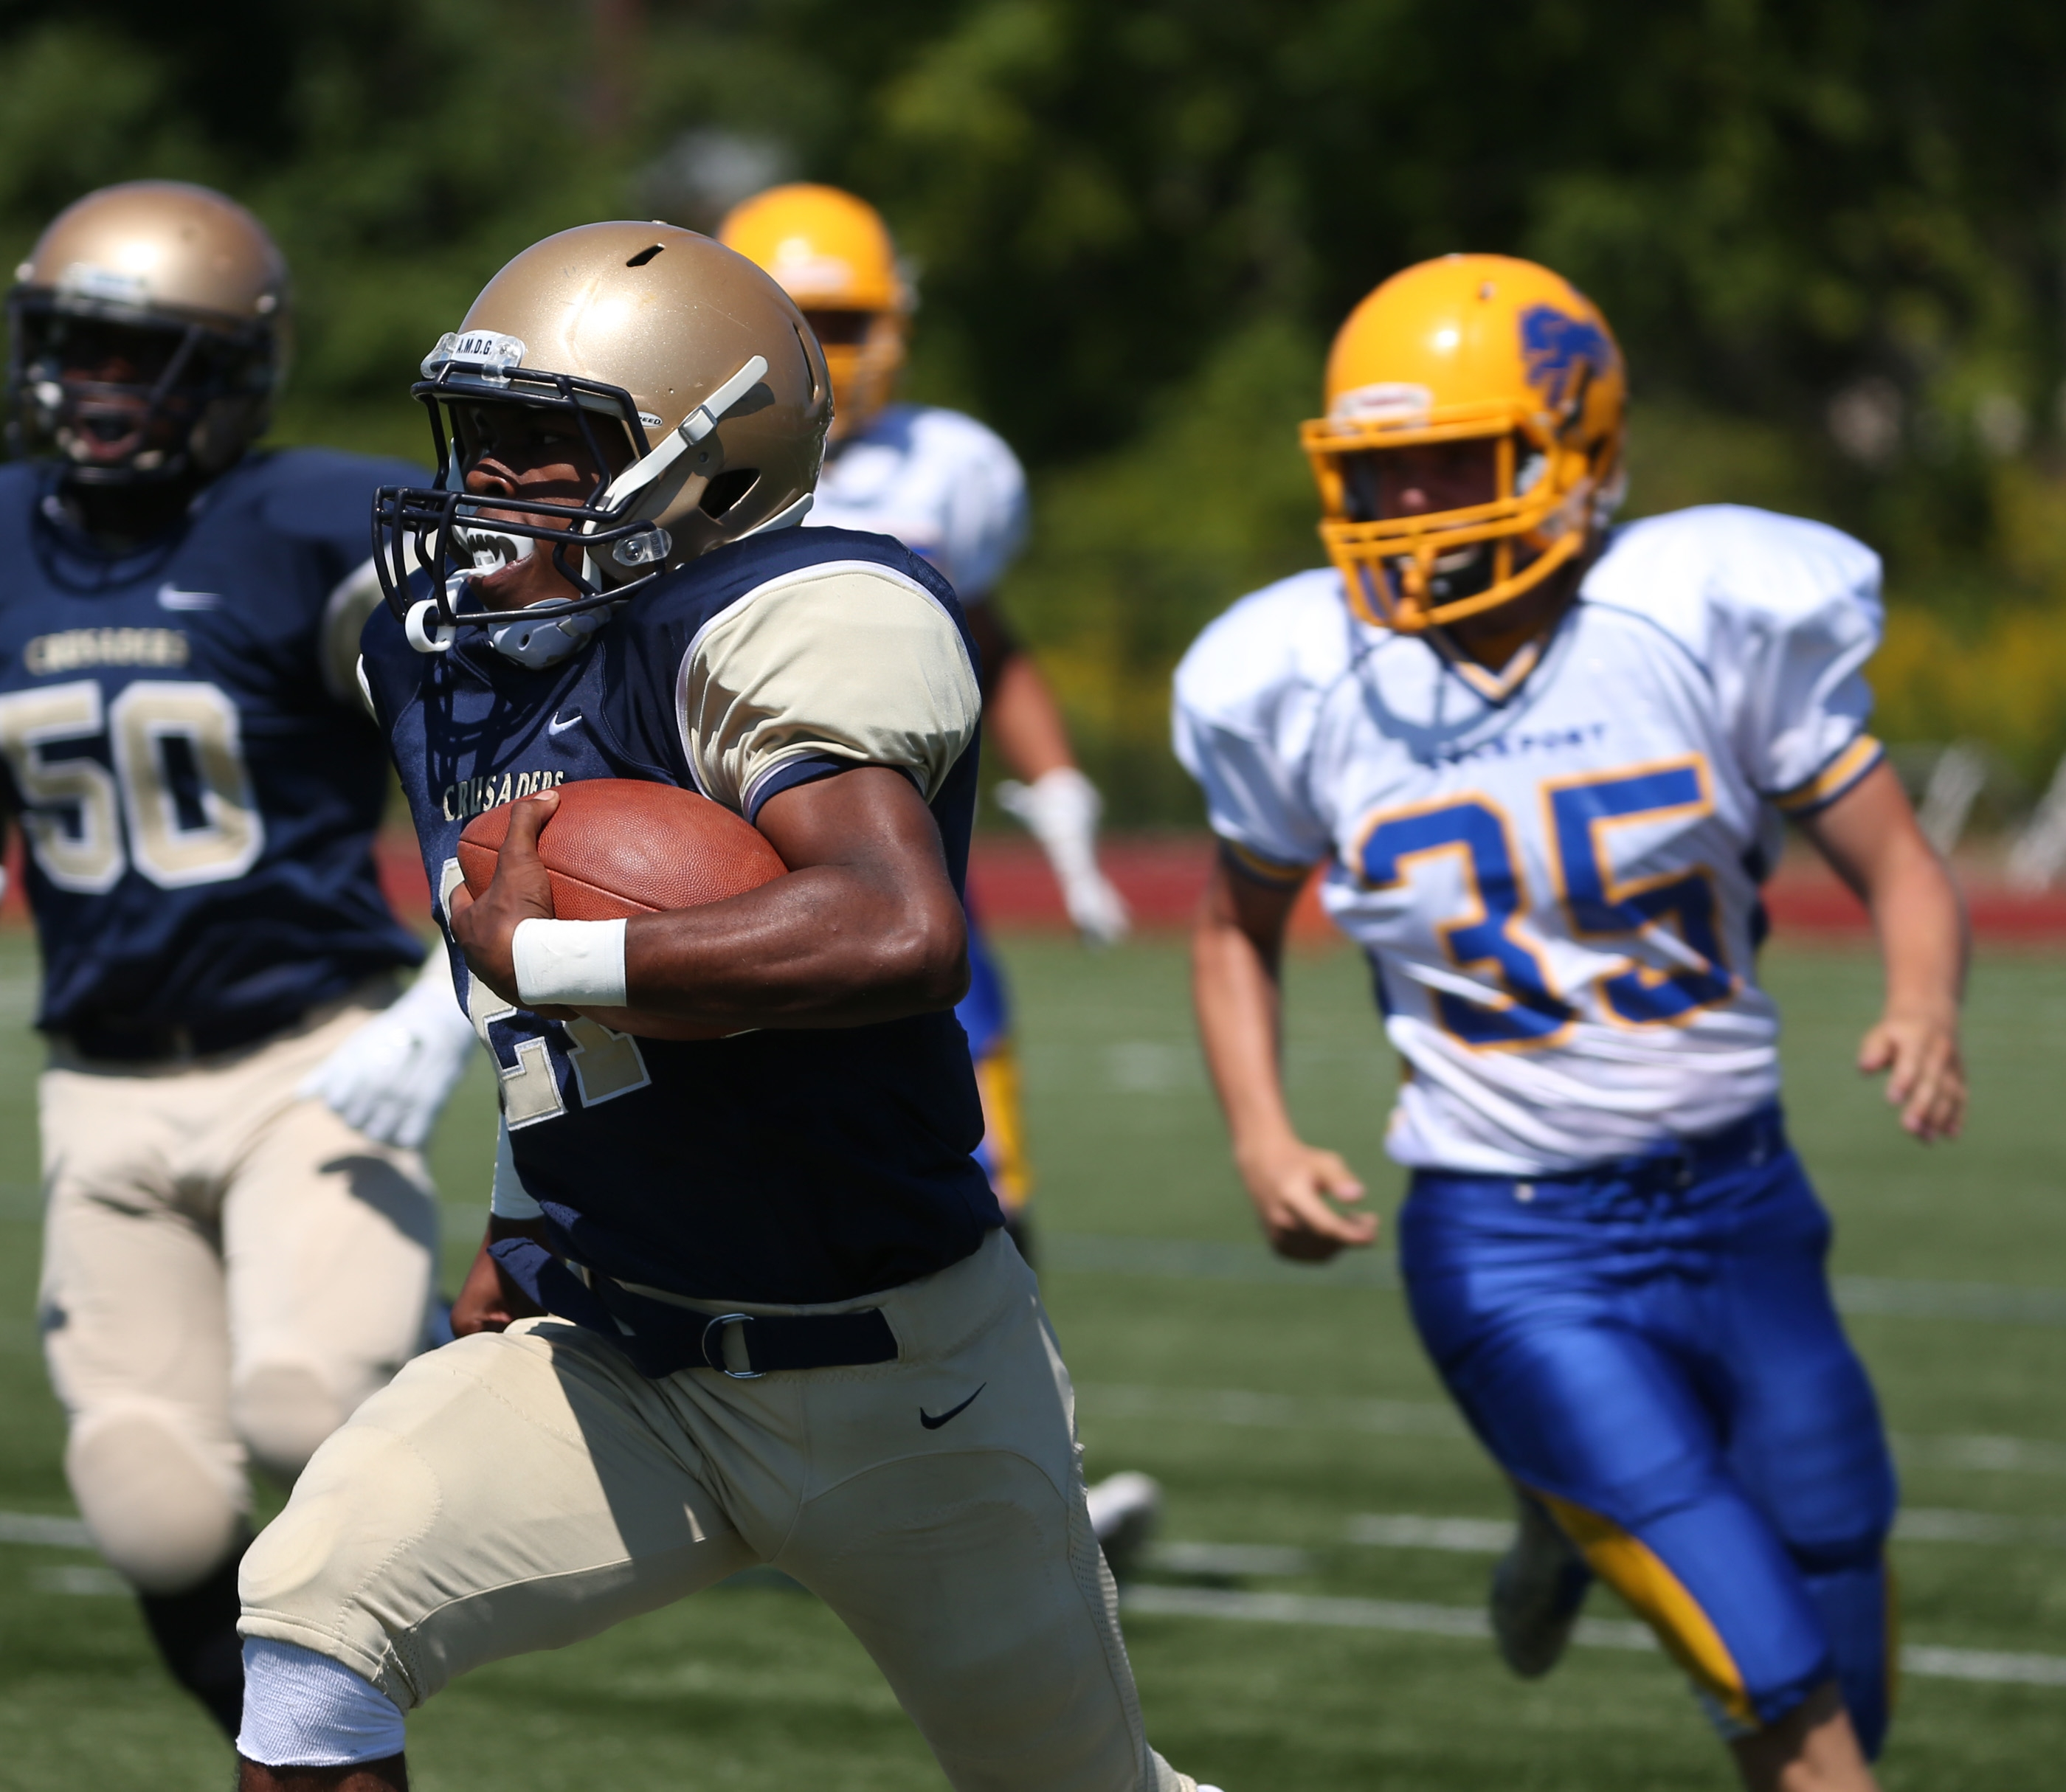 Canisius' Kenyatta Huston, shown carrying the ball against Lockport, and the rest of the Crusaders are again ranked No. 1 among large schools this week.